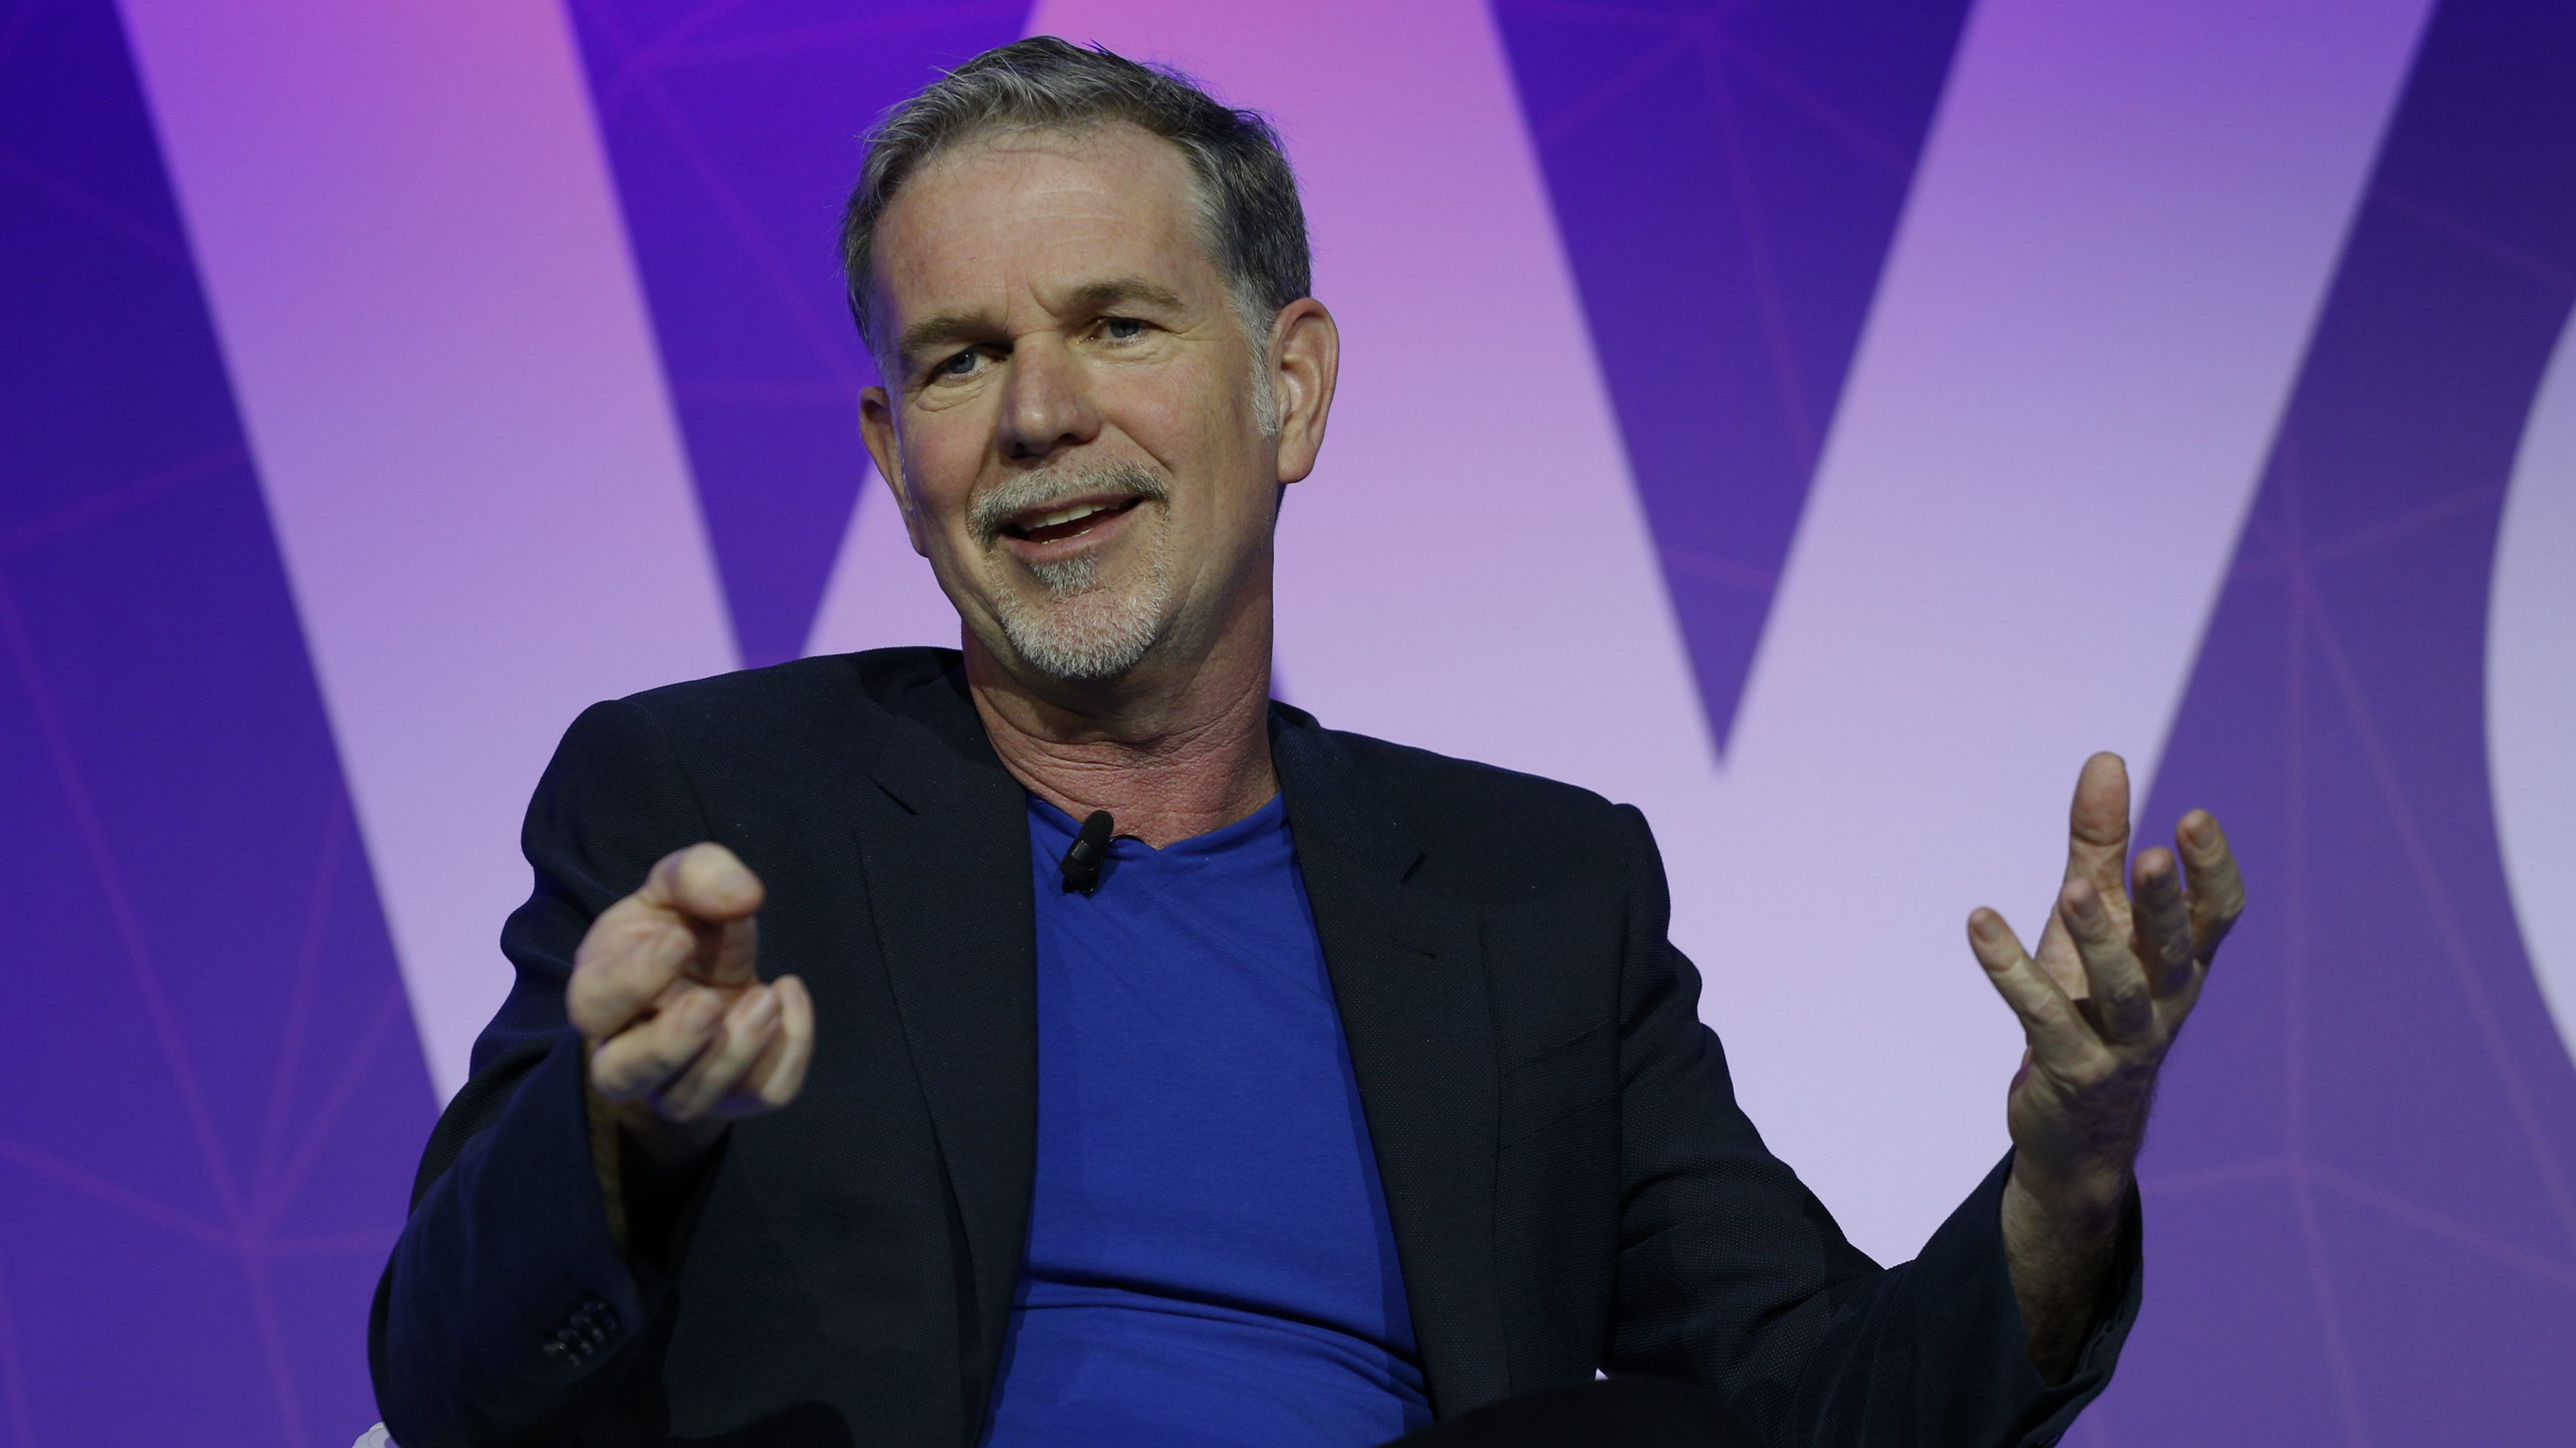 Netflix's Chief Executive Officer Reed Hastings gestures as he delivers his keynote speech during Mobile World Congress in Barcelona, Spain, February 27, 2017. REUTERS/Paul Hanna - RTS10NUT